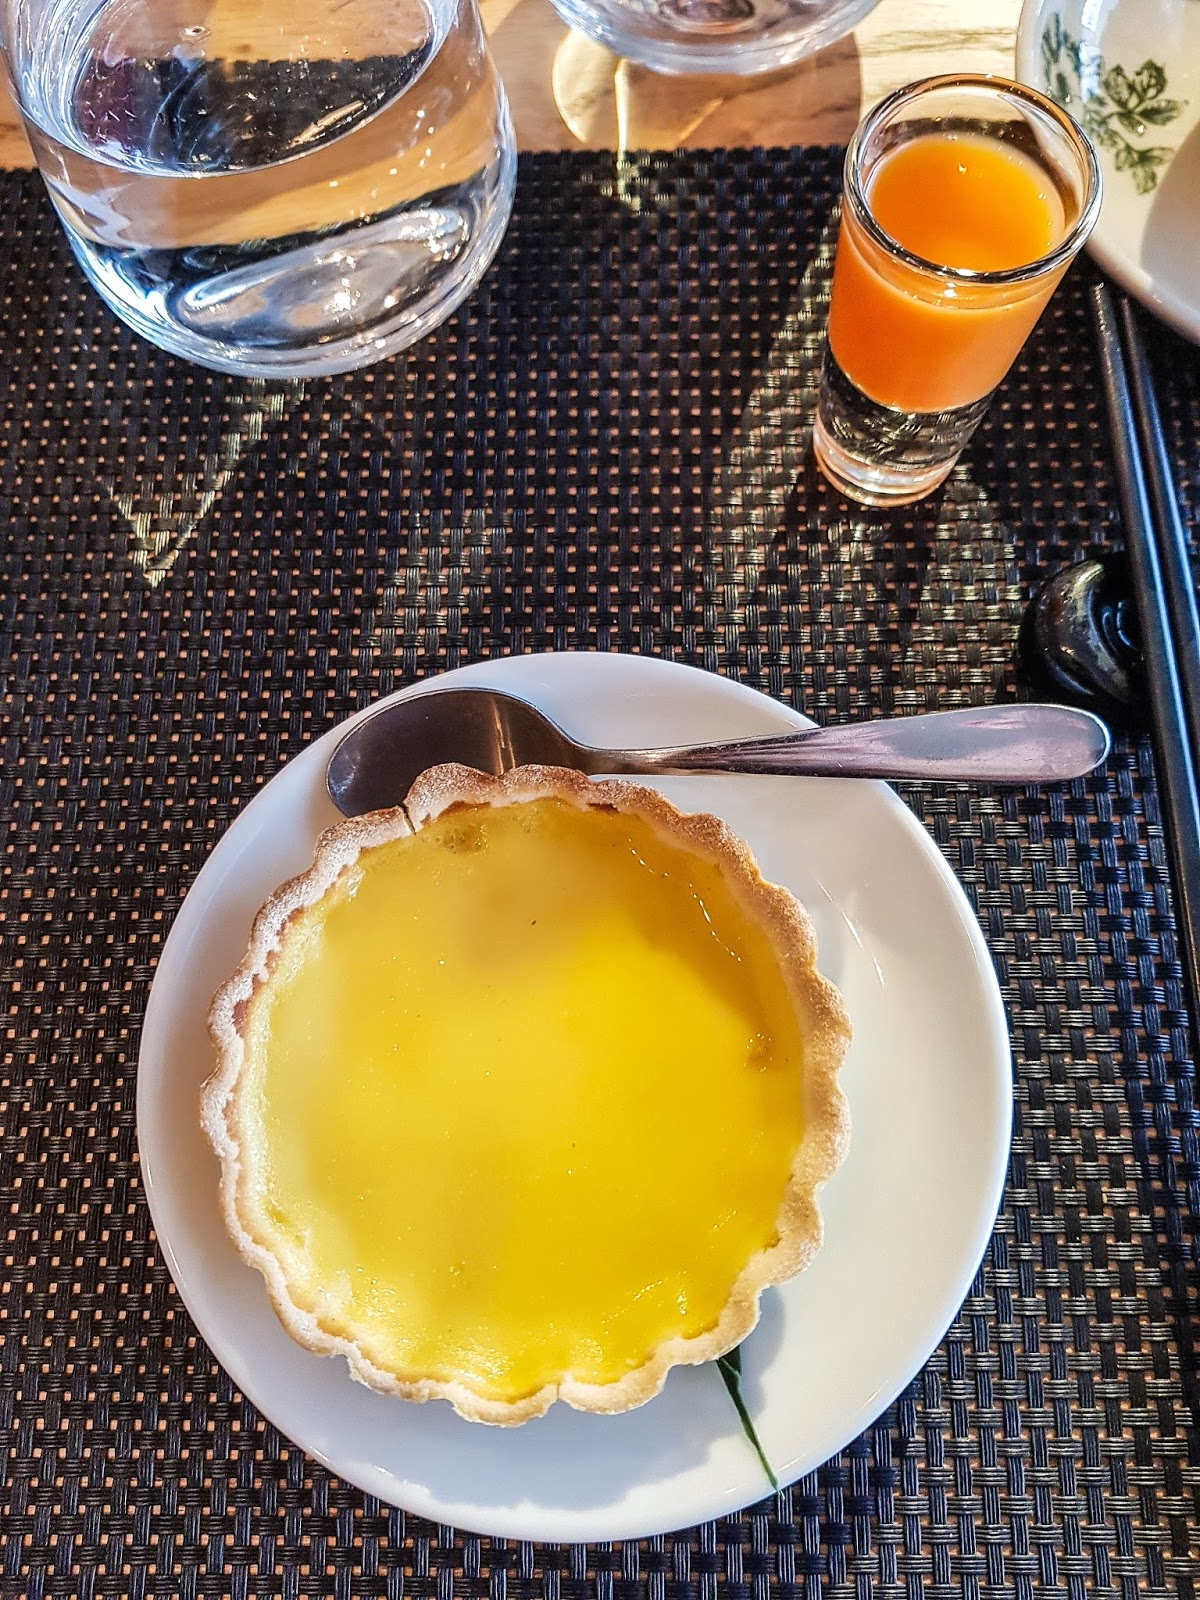 Chinese Egg Tart and carrot, ginger and orange shot